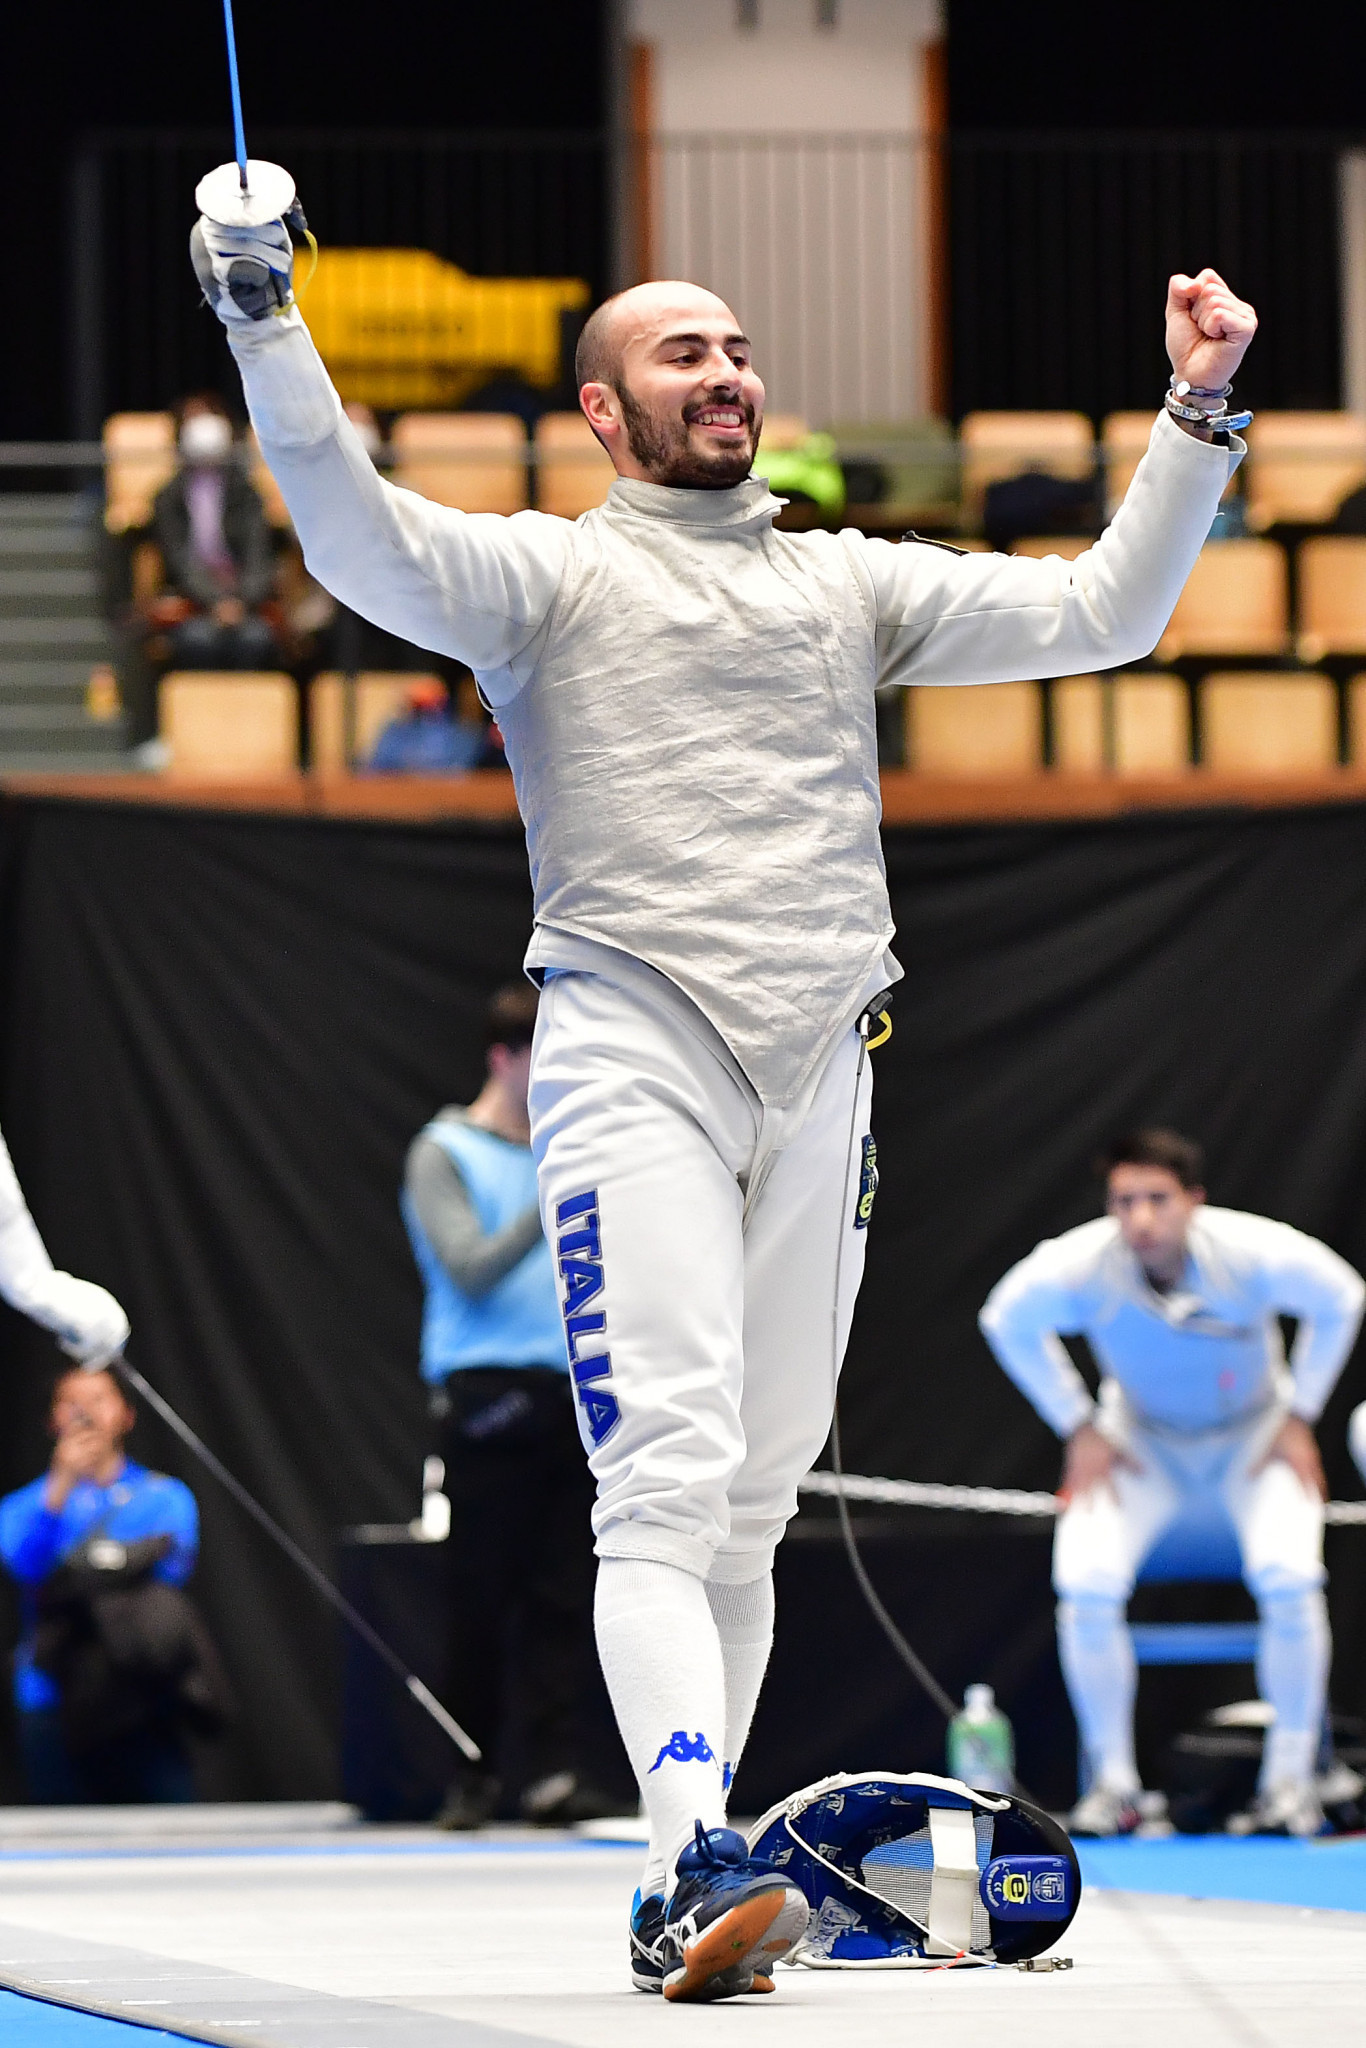 Italy's Foconi enters home FIE Grand Prix as world number one